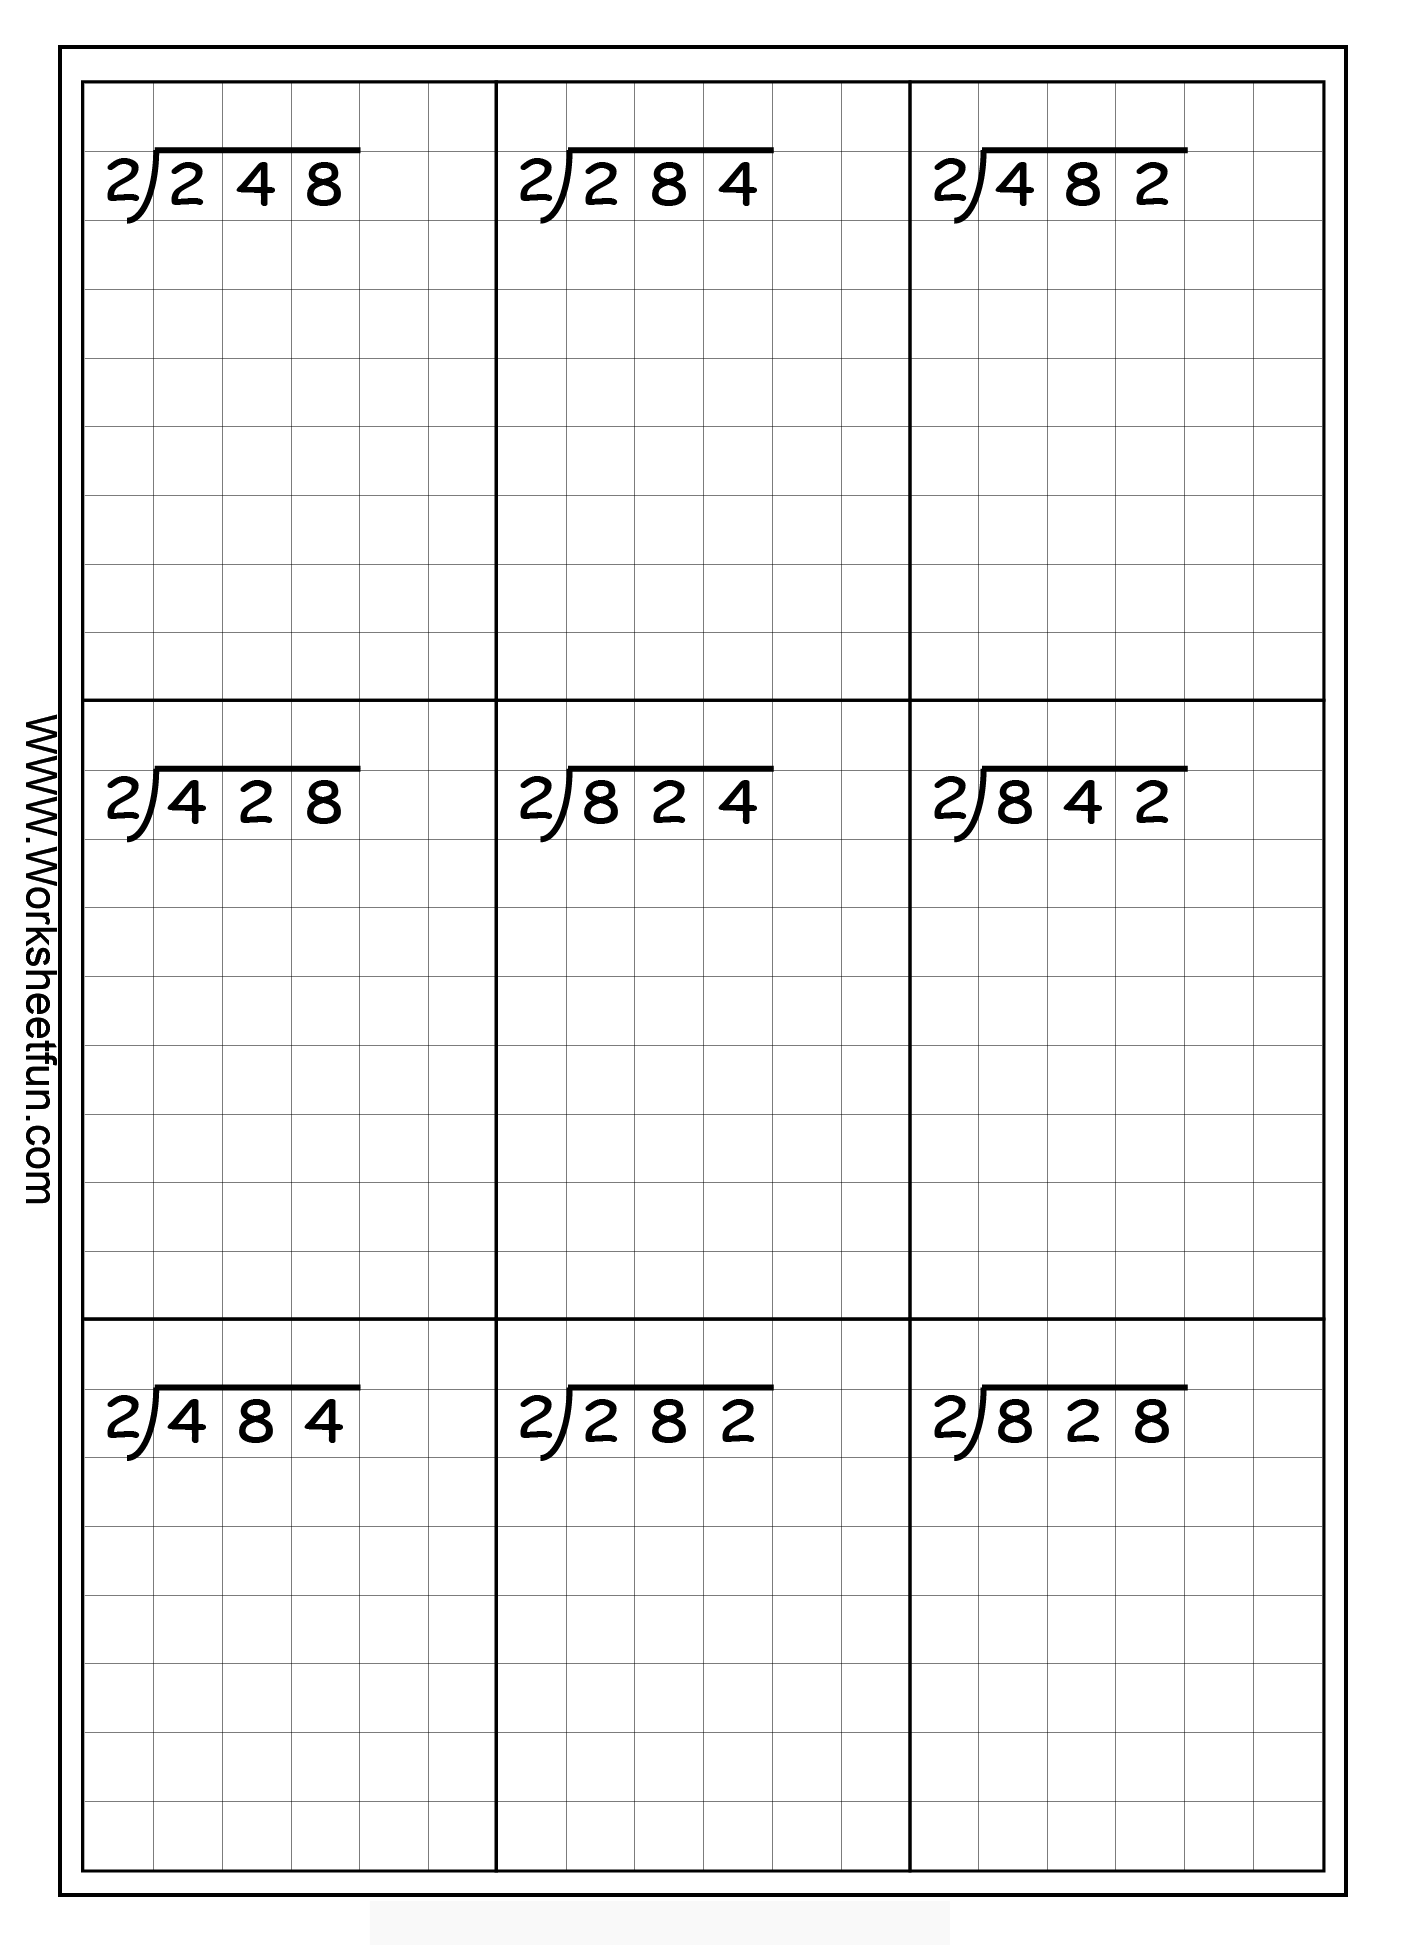 Long Division 3 Digits By 1 Digit No Remainder 20 Worksheets – Basic Division Worksheets with Pictures